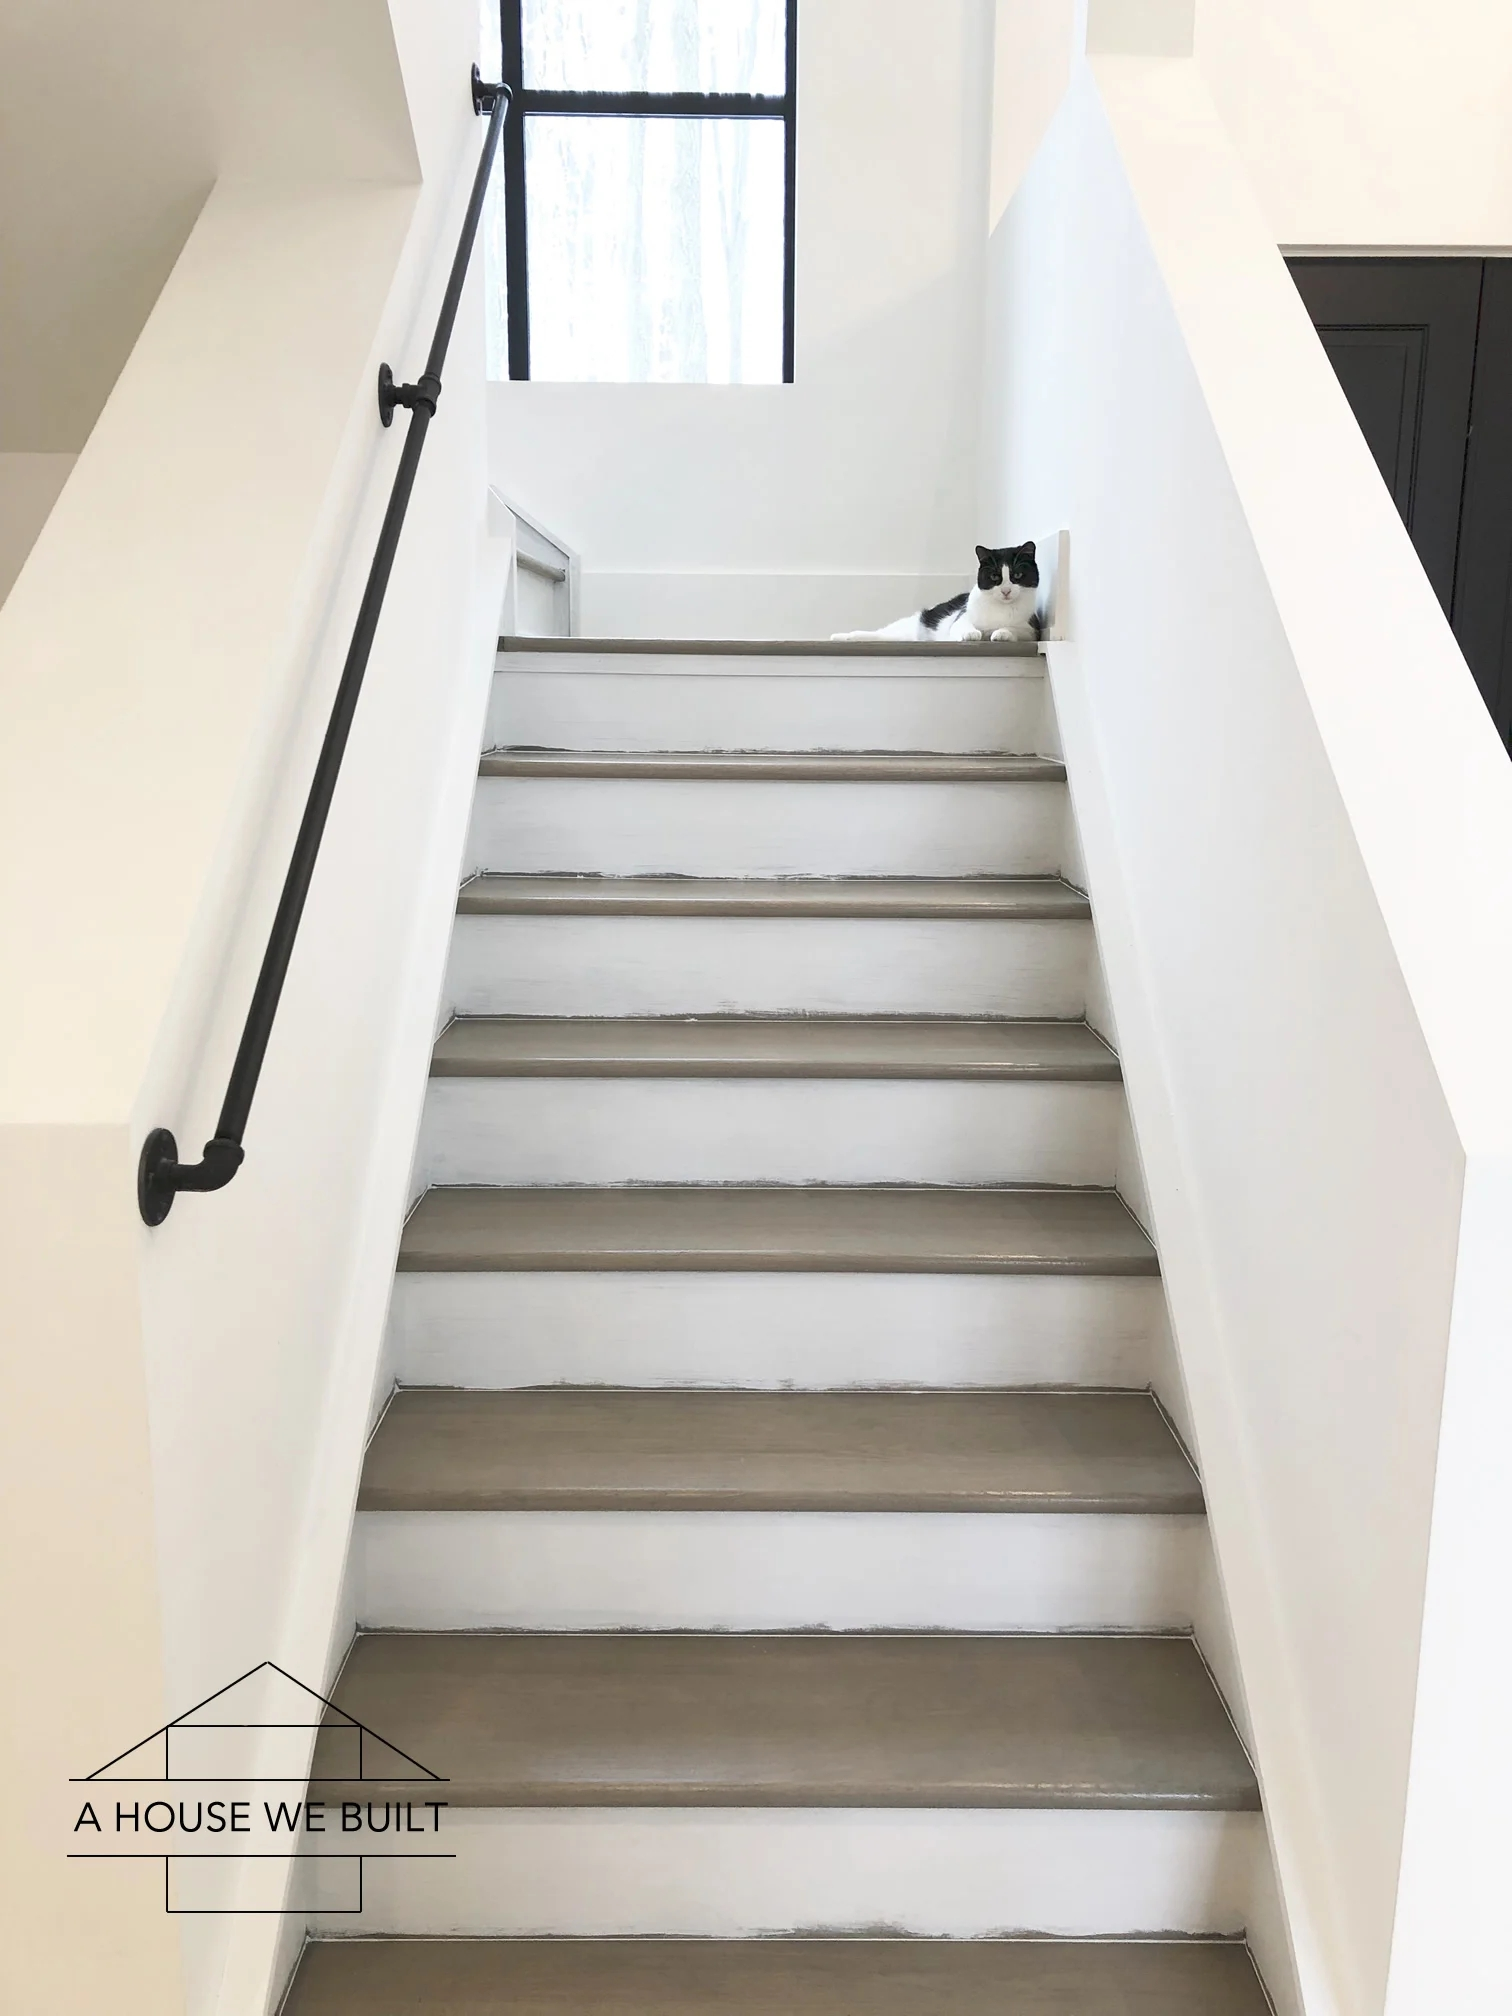 How To Stain And Paint Stairs | Painted And Stained Stairs | Easy Diy | Two Tone | Espresso Stained | Pinterest | Home